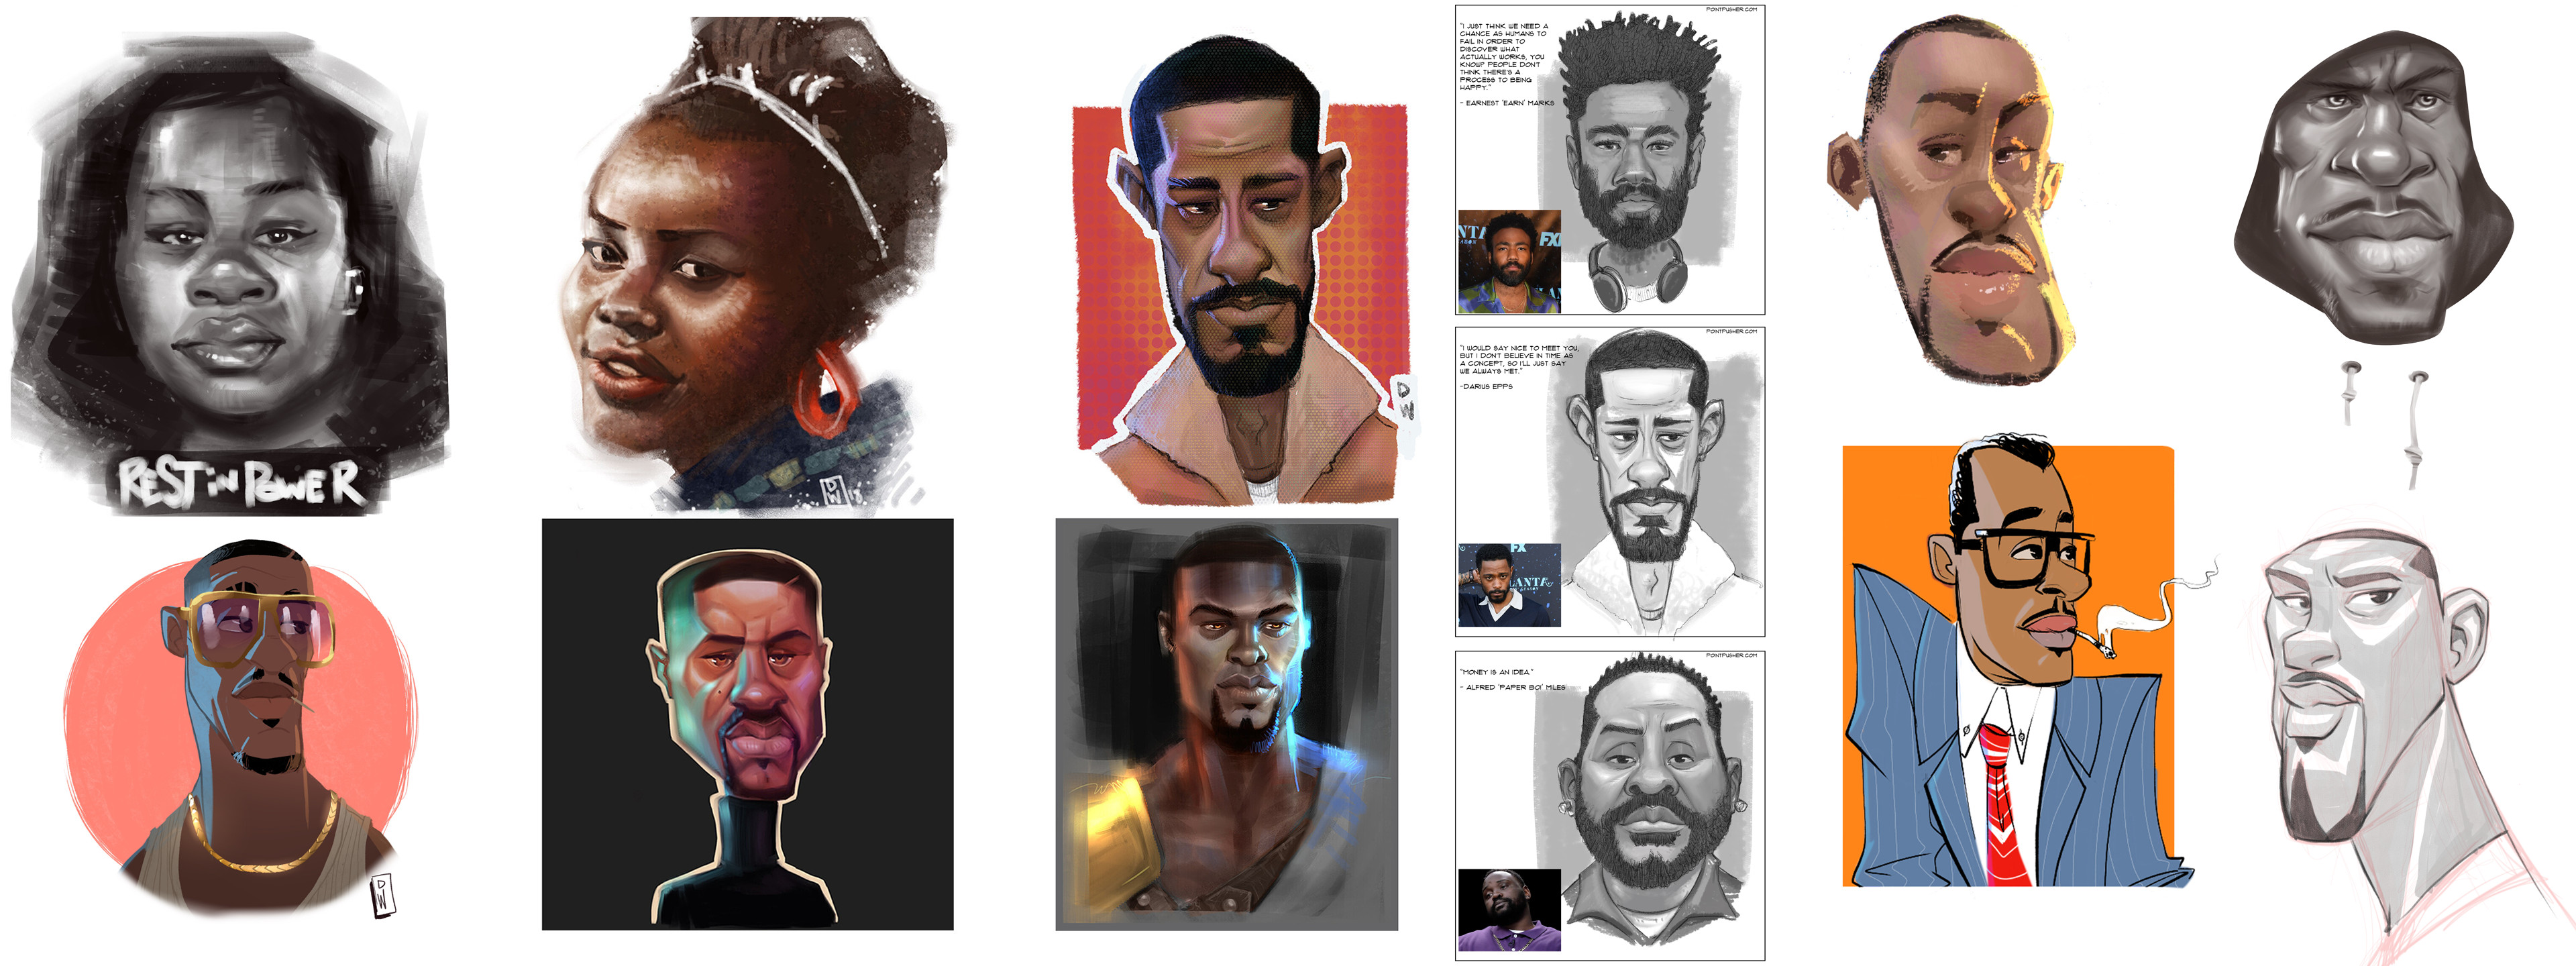 Exploration into painting darker skin tones in various styles